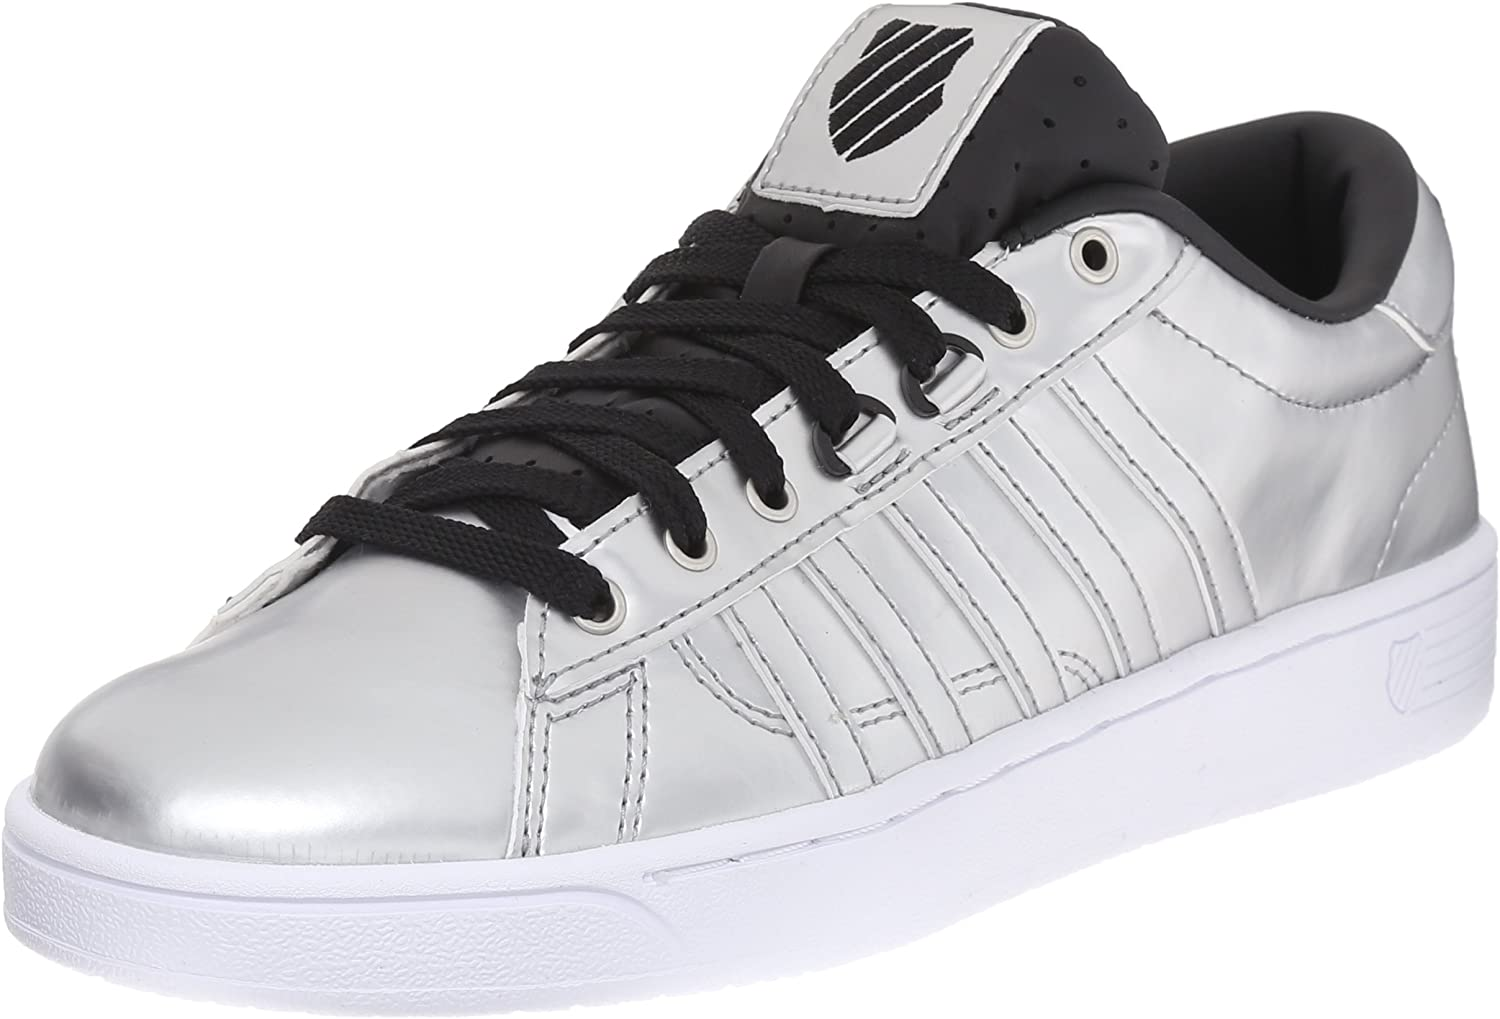 K-Swiss Women's Hoke Metallic CMF S Athletic shoes